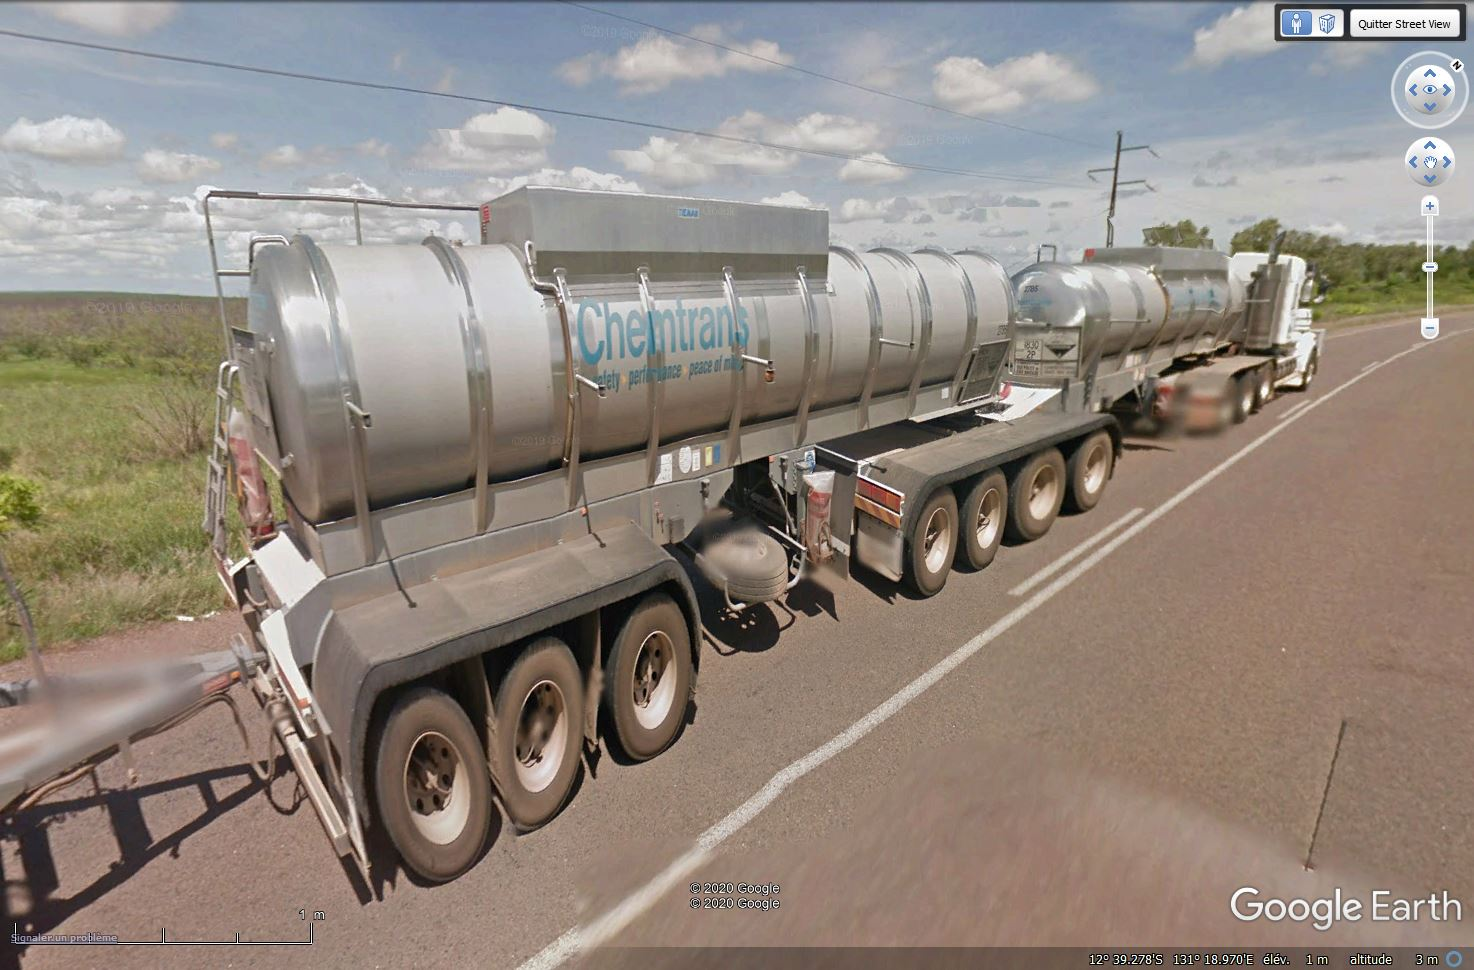 Camions australiens (road trains) - Page 6 Tsge1365